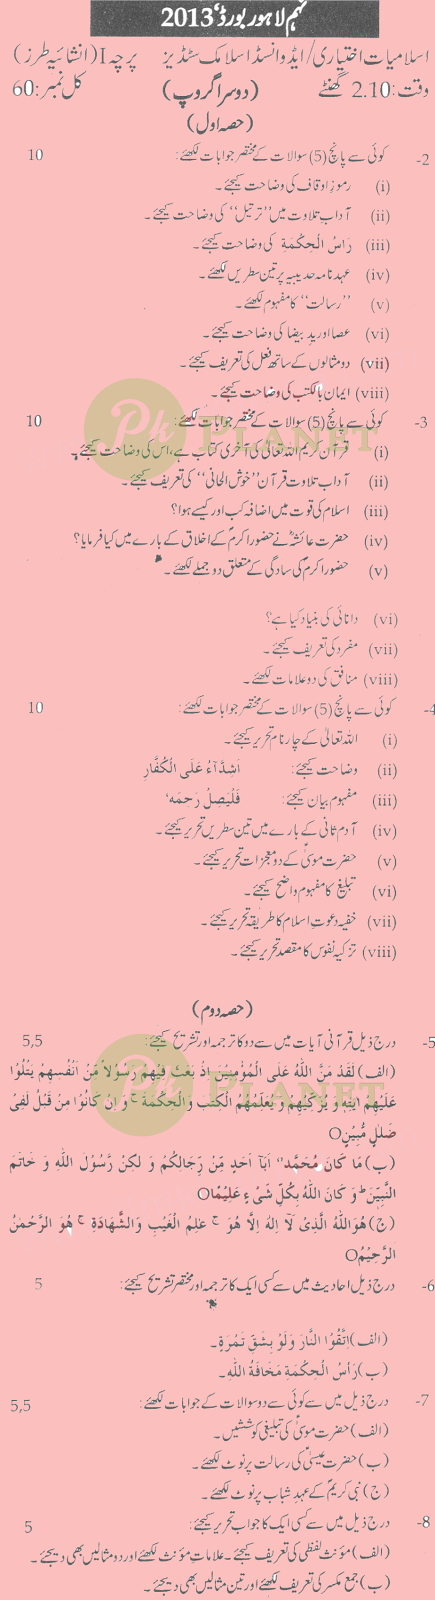 Past Papers of 9th Class Lahore Board 2013 Islamiat Elective